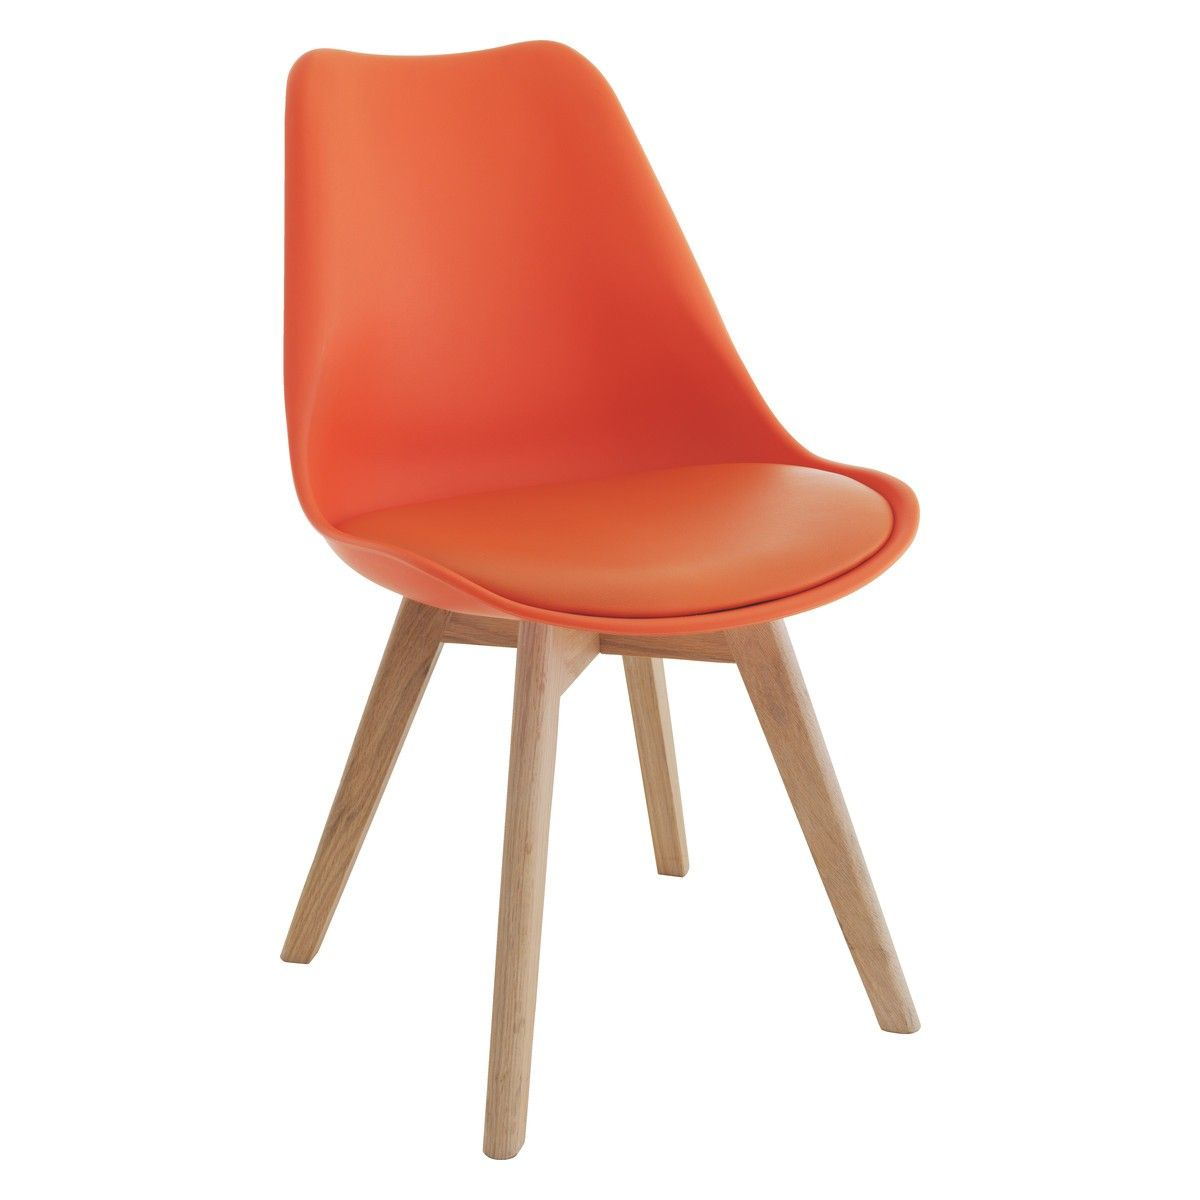 Orange Kitchen Table And Chairs: JERRY Orange Dining Chair With Solid Oak Legs In 2019